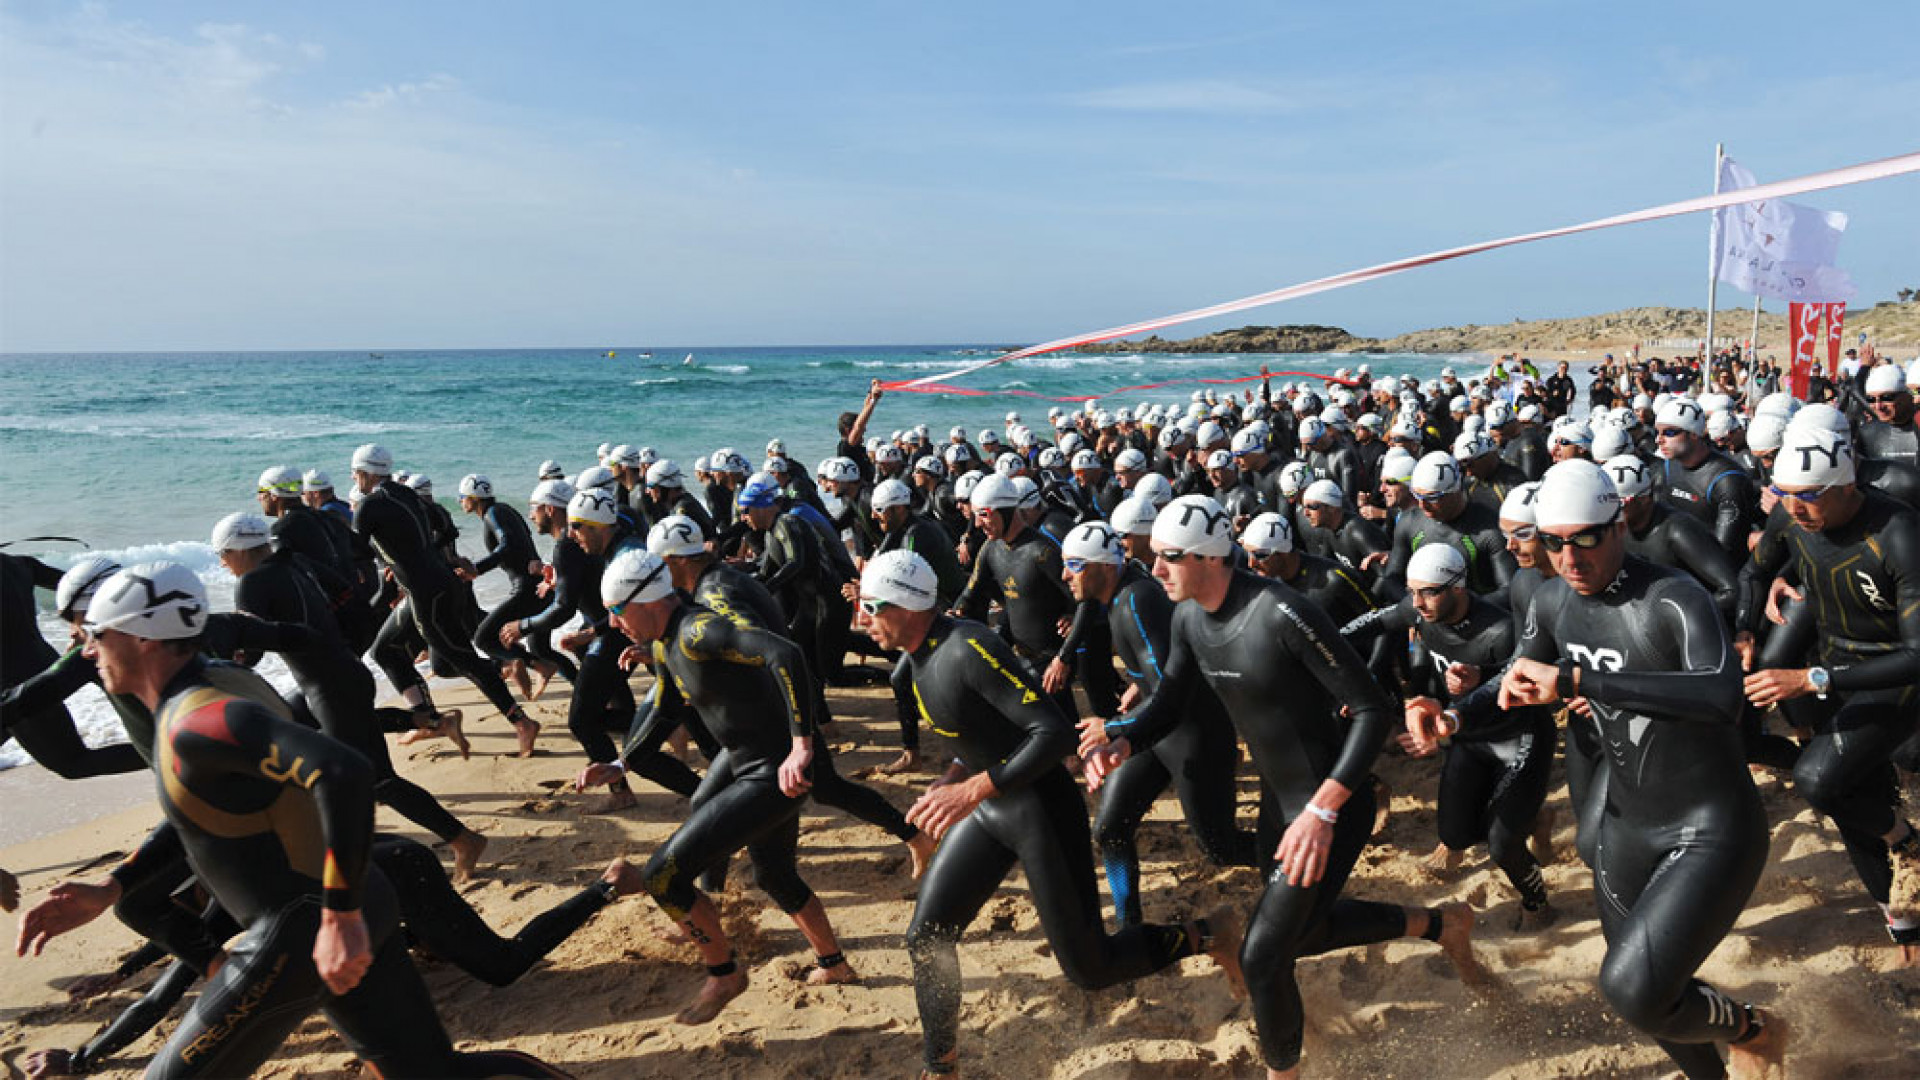 Swimmers enter the sea at the Chia Sardinia Triathlon